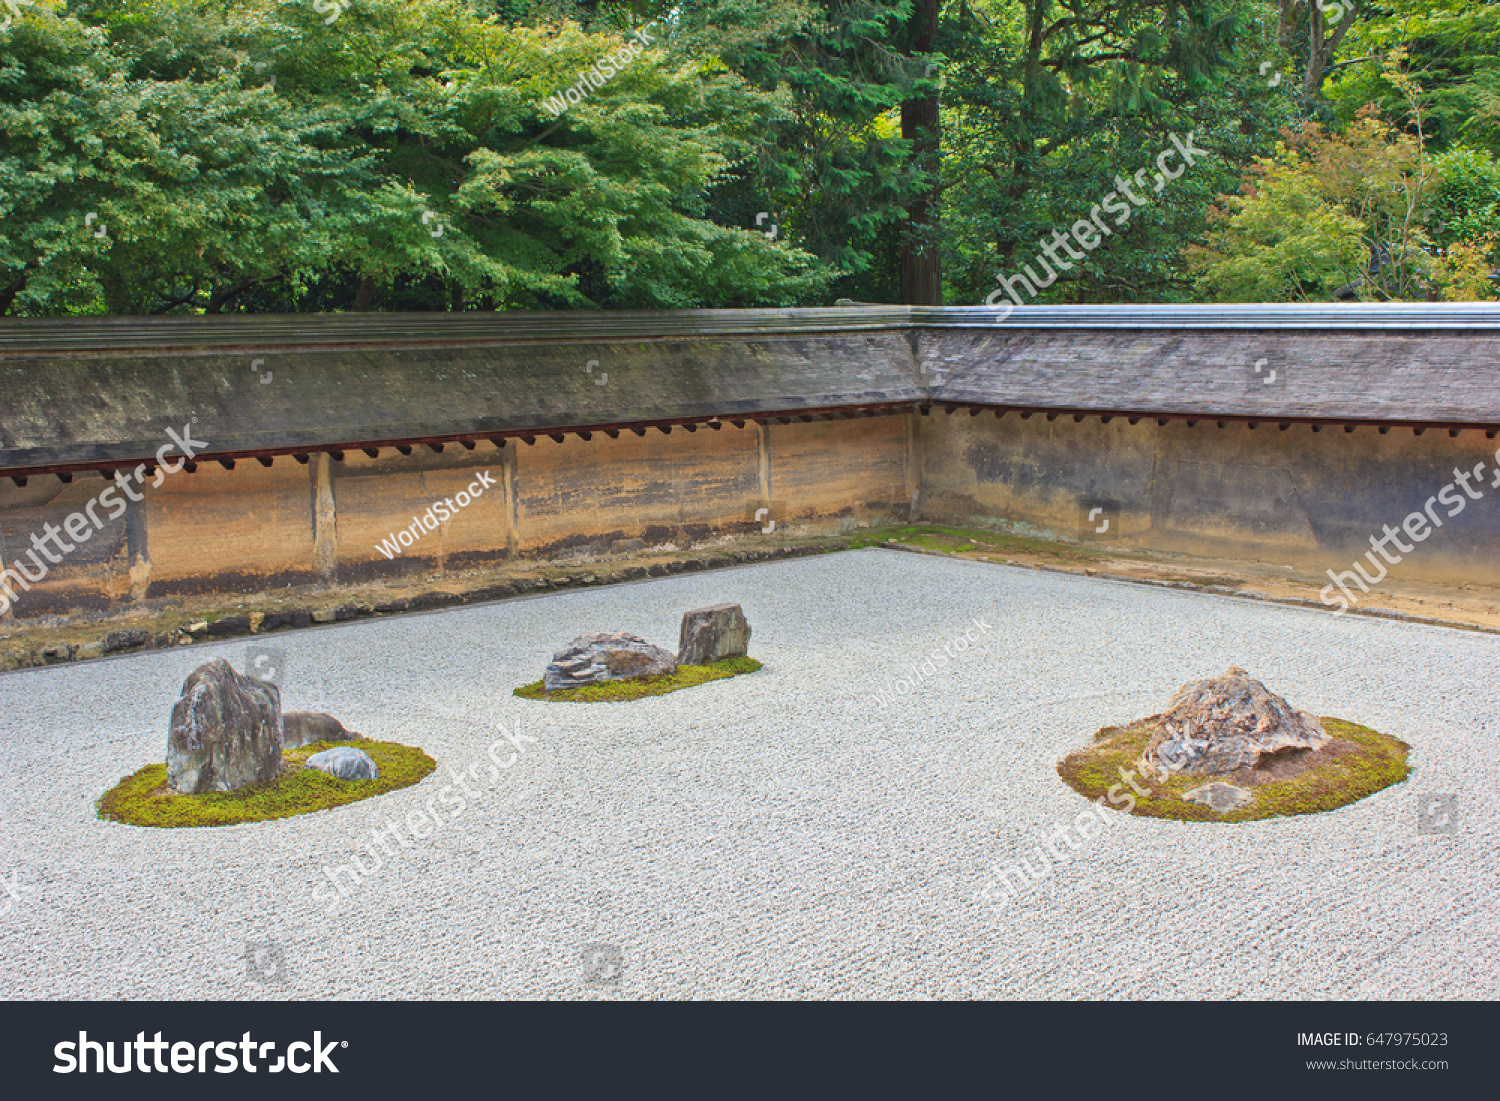 Rocks Representing Mountainous Islands Stand In A Sea Of White Sand In A  Classic Rock Garden